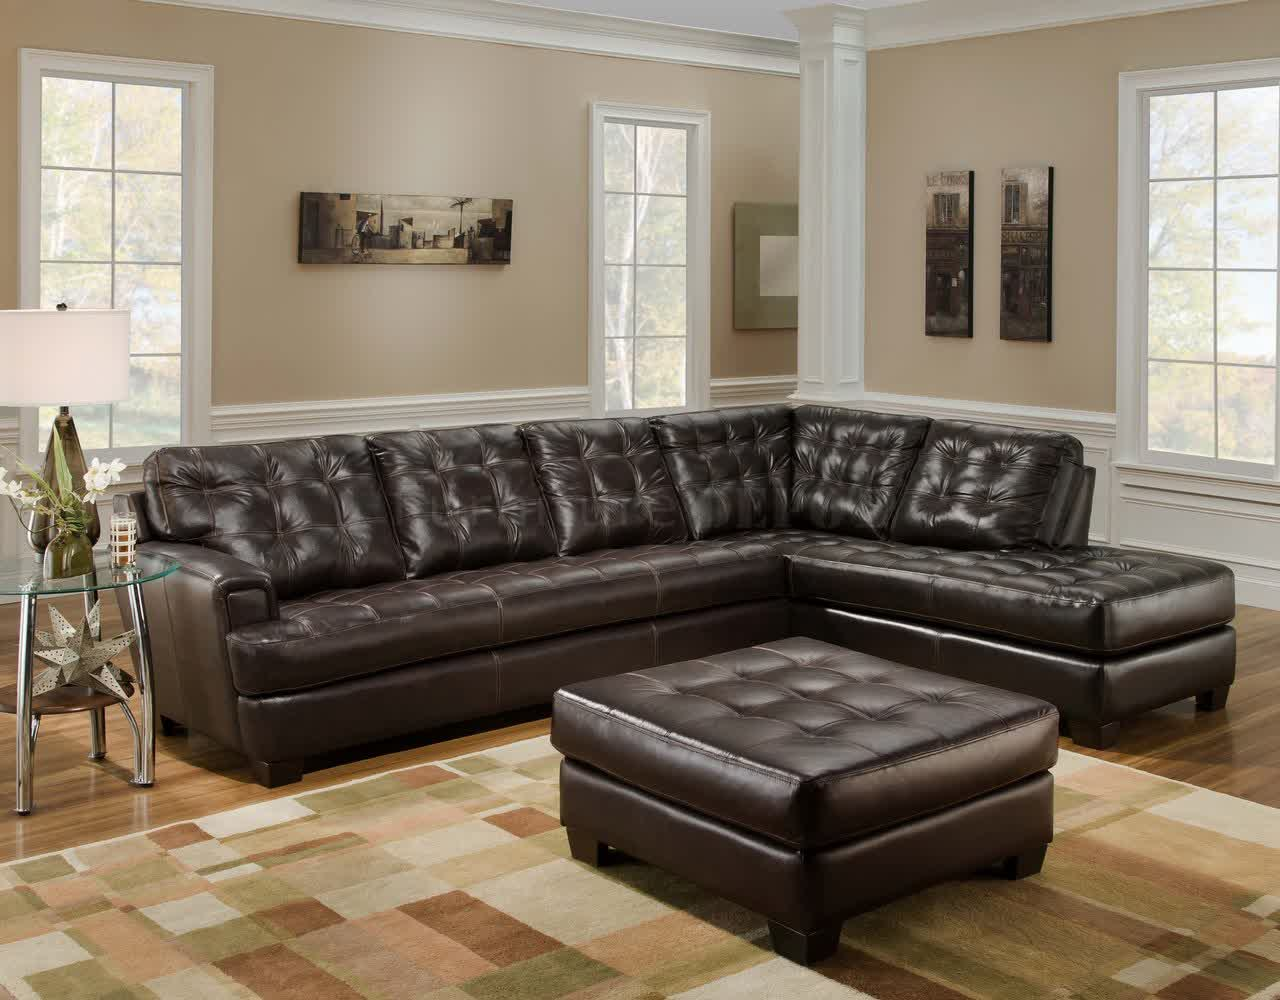 Image of: brown tufted leather sofa